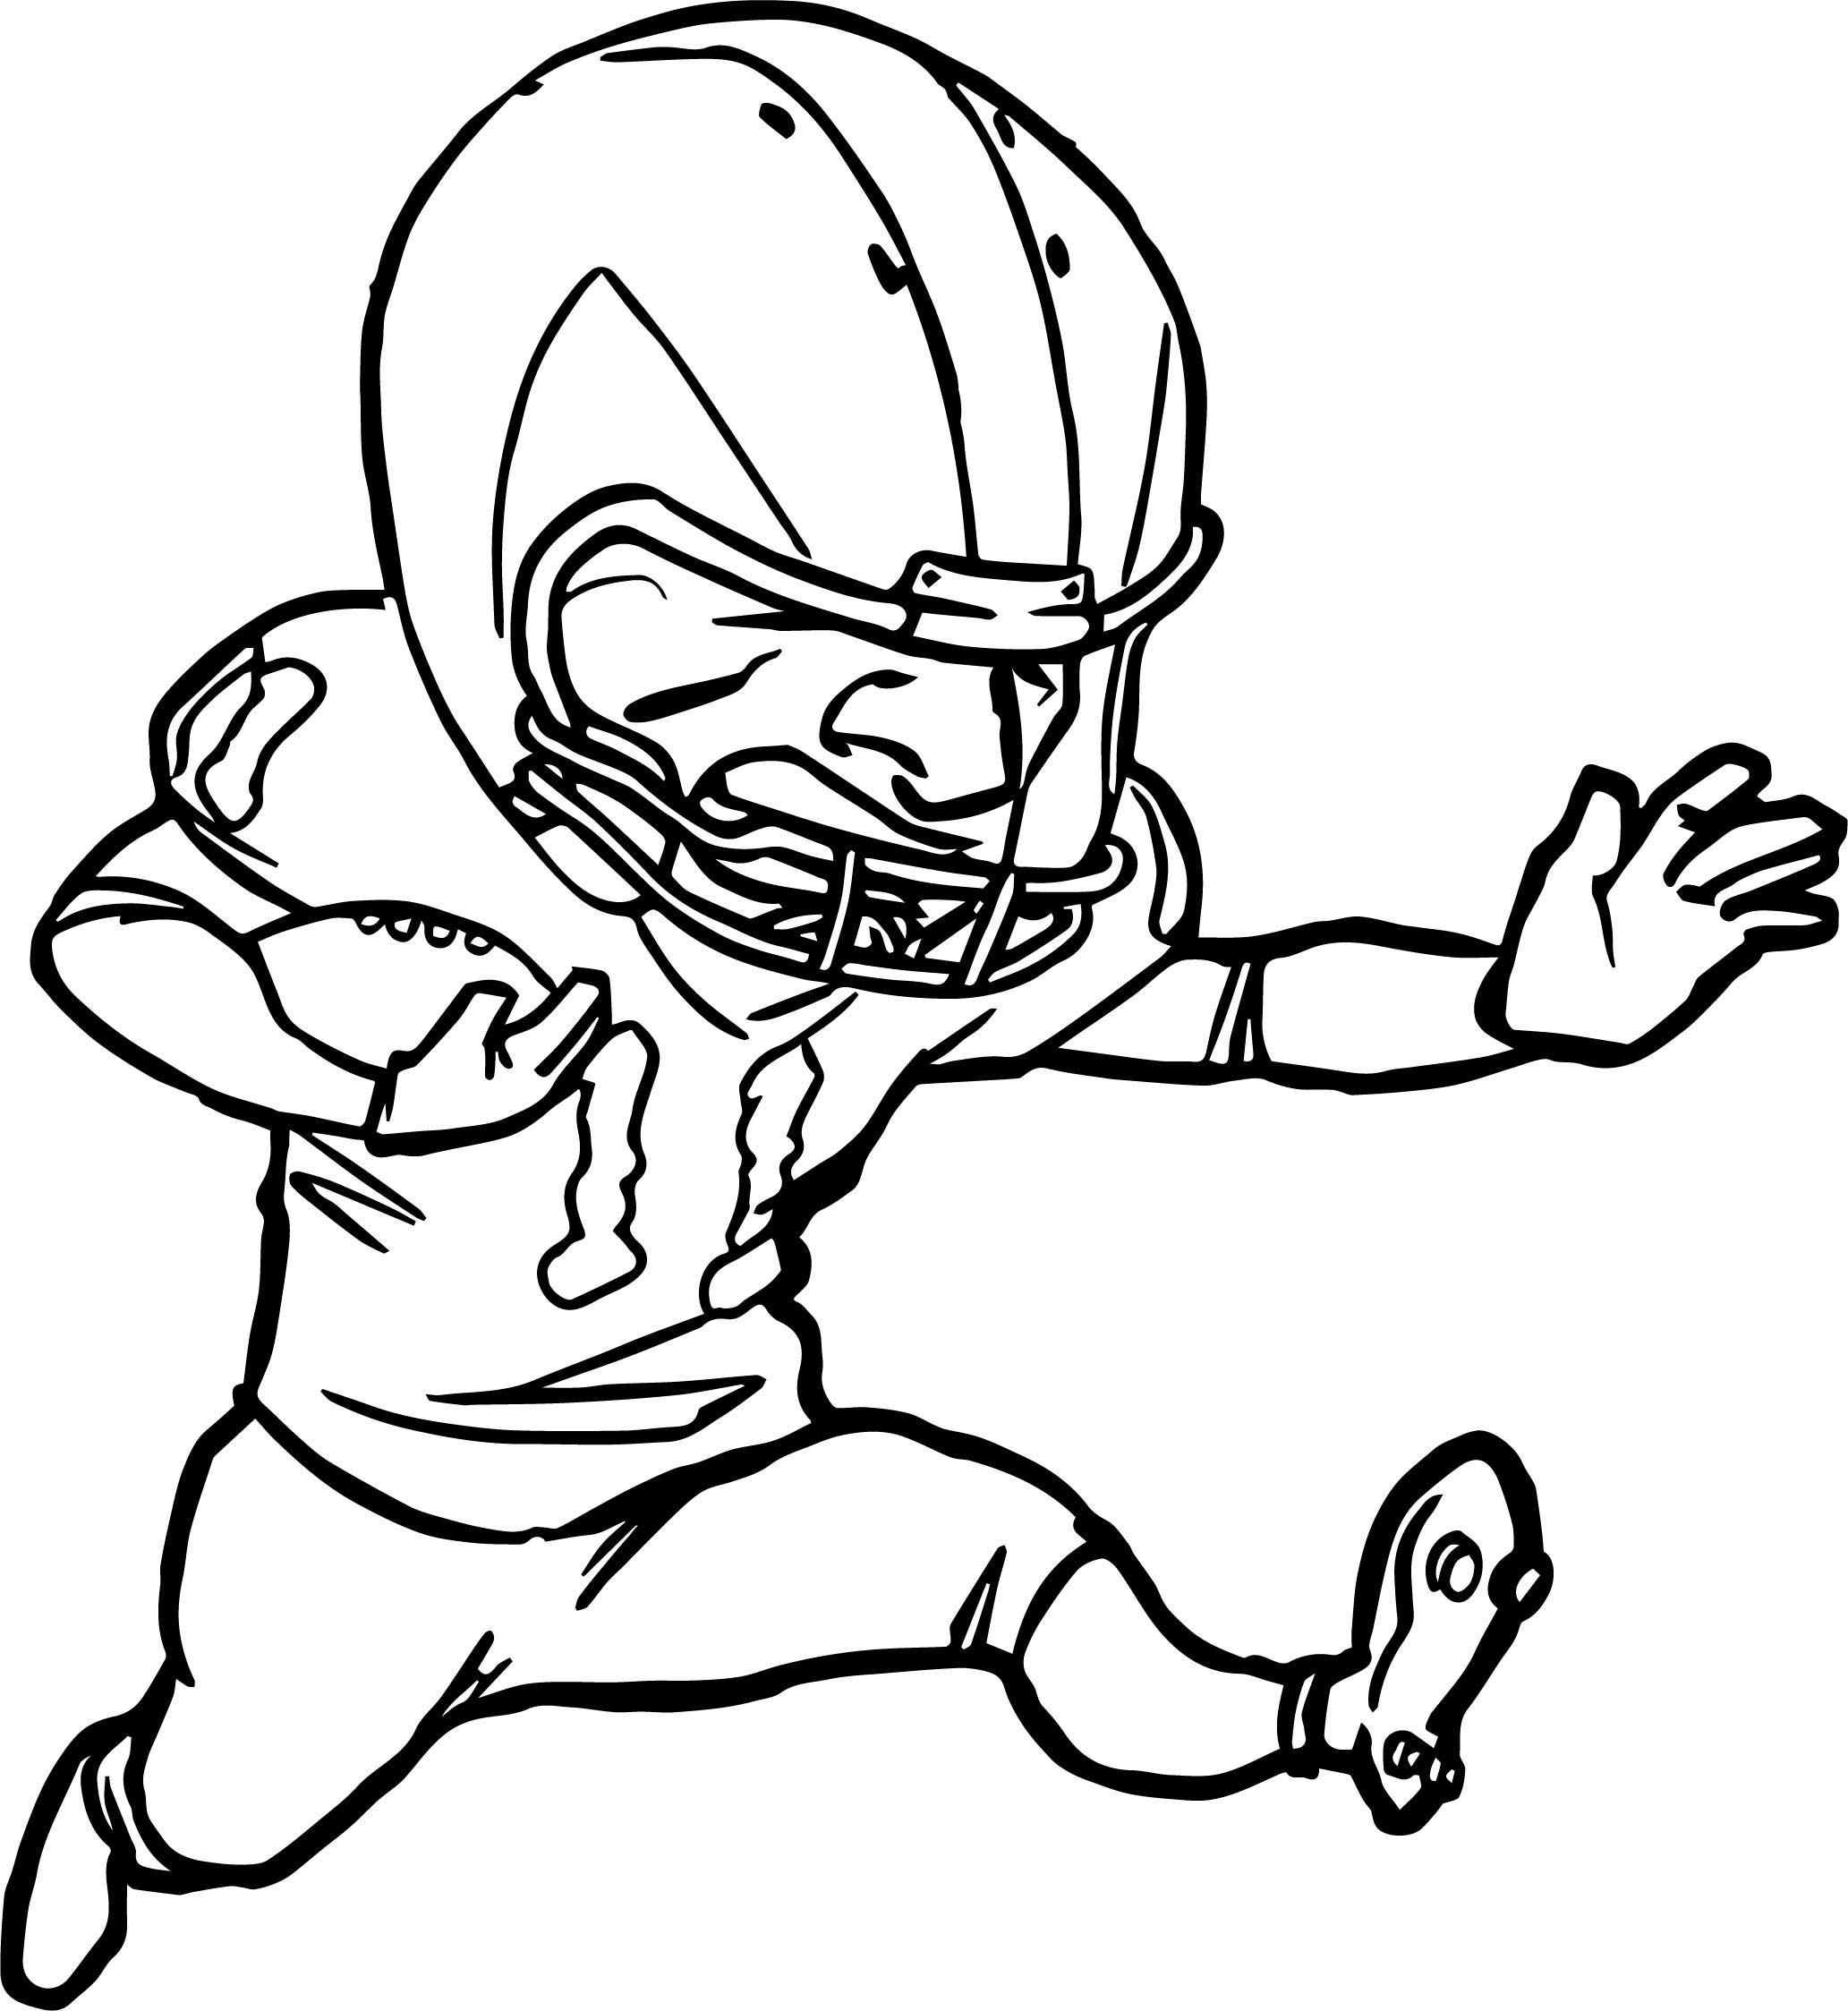 awesome Running Player Playing Football Coloring Page ...